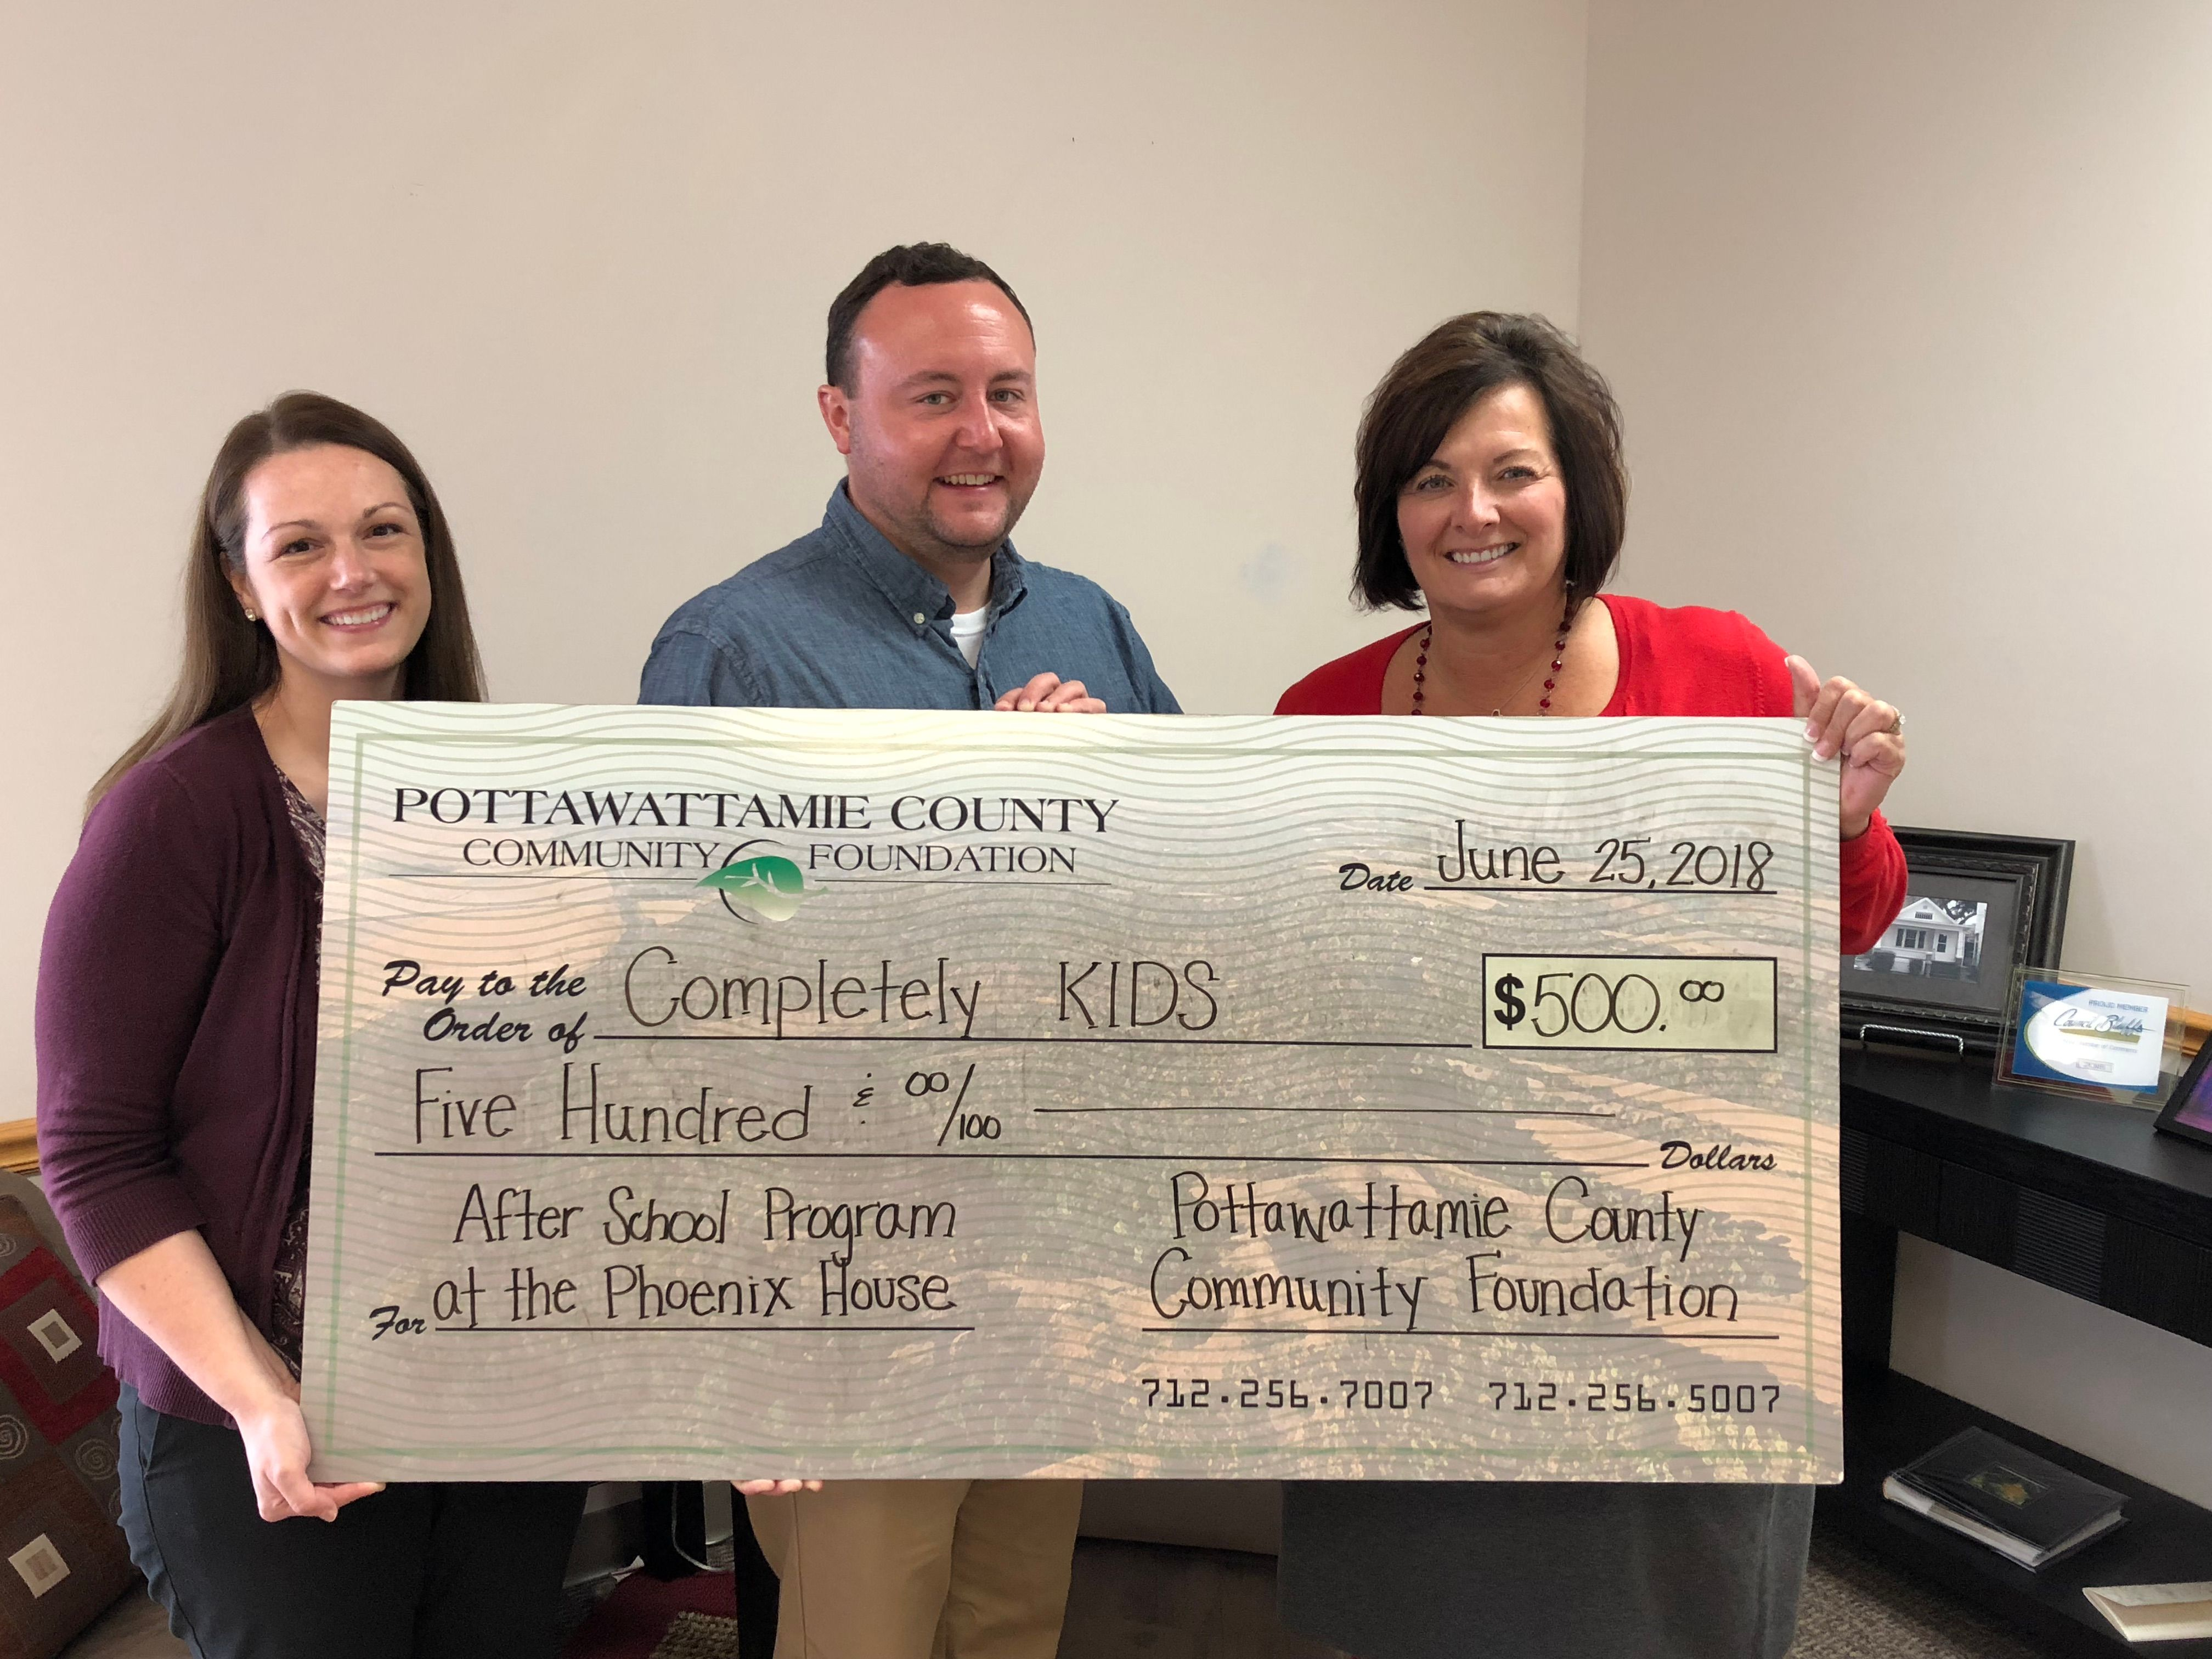 PCCF Awards $500 Grant to Completely KIDS